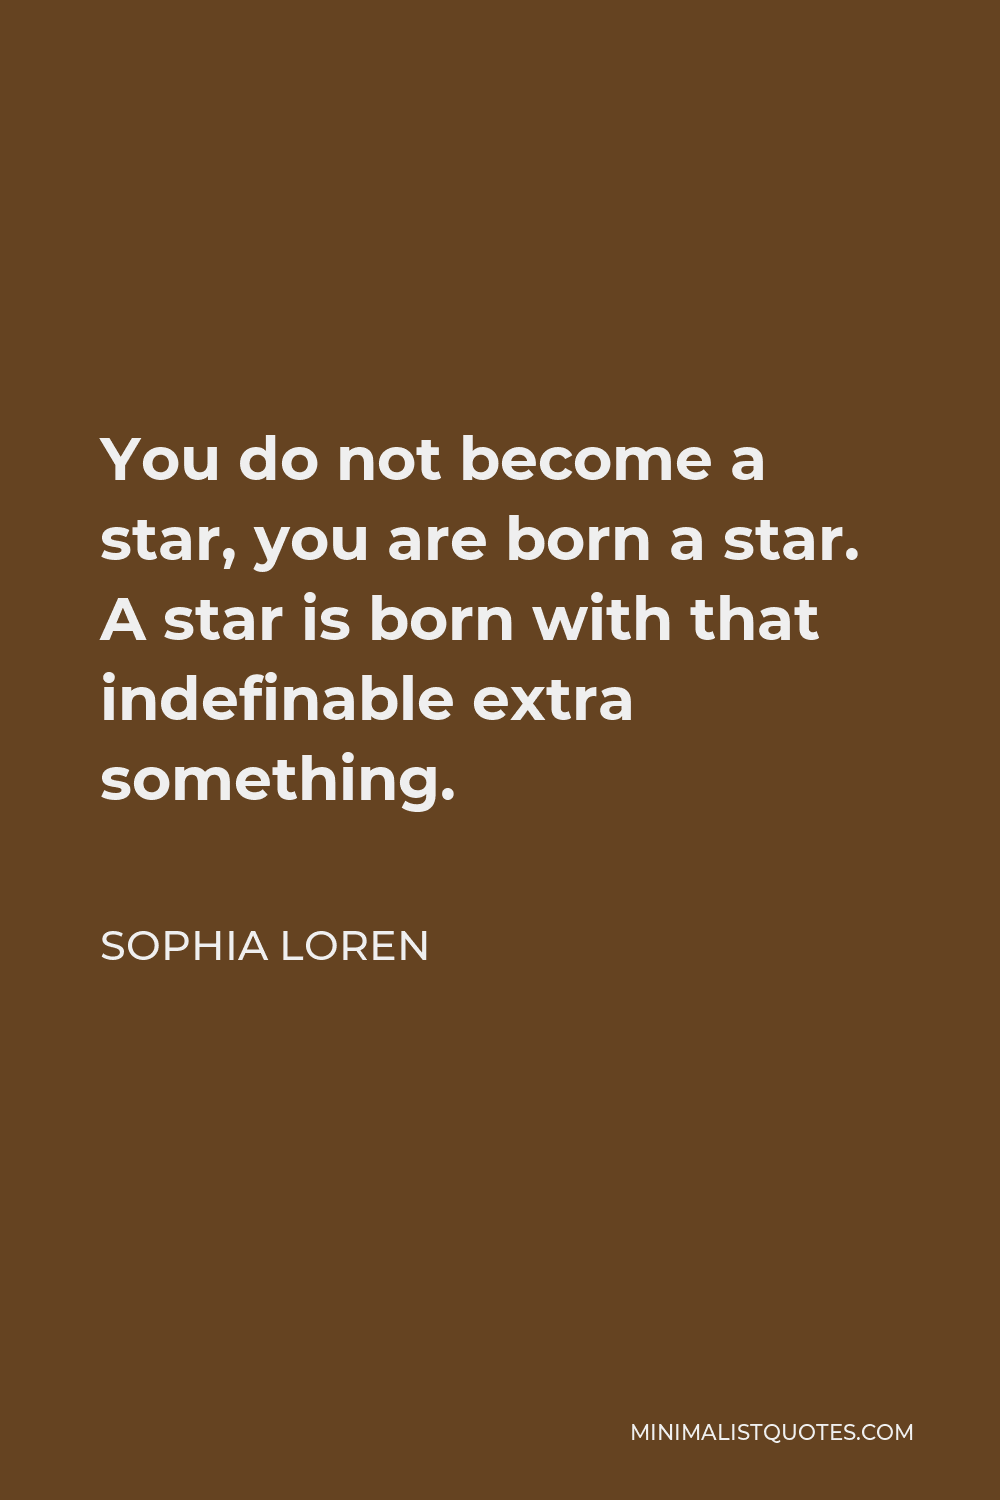 Sophia Loren Quote - You do not become a star, you are born a star. A star is born with that indefinable extra something.